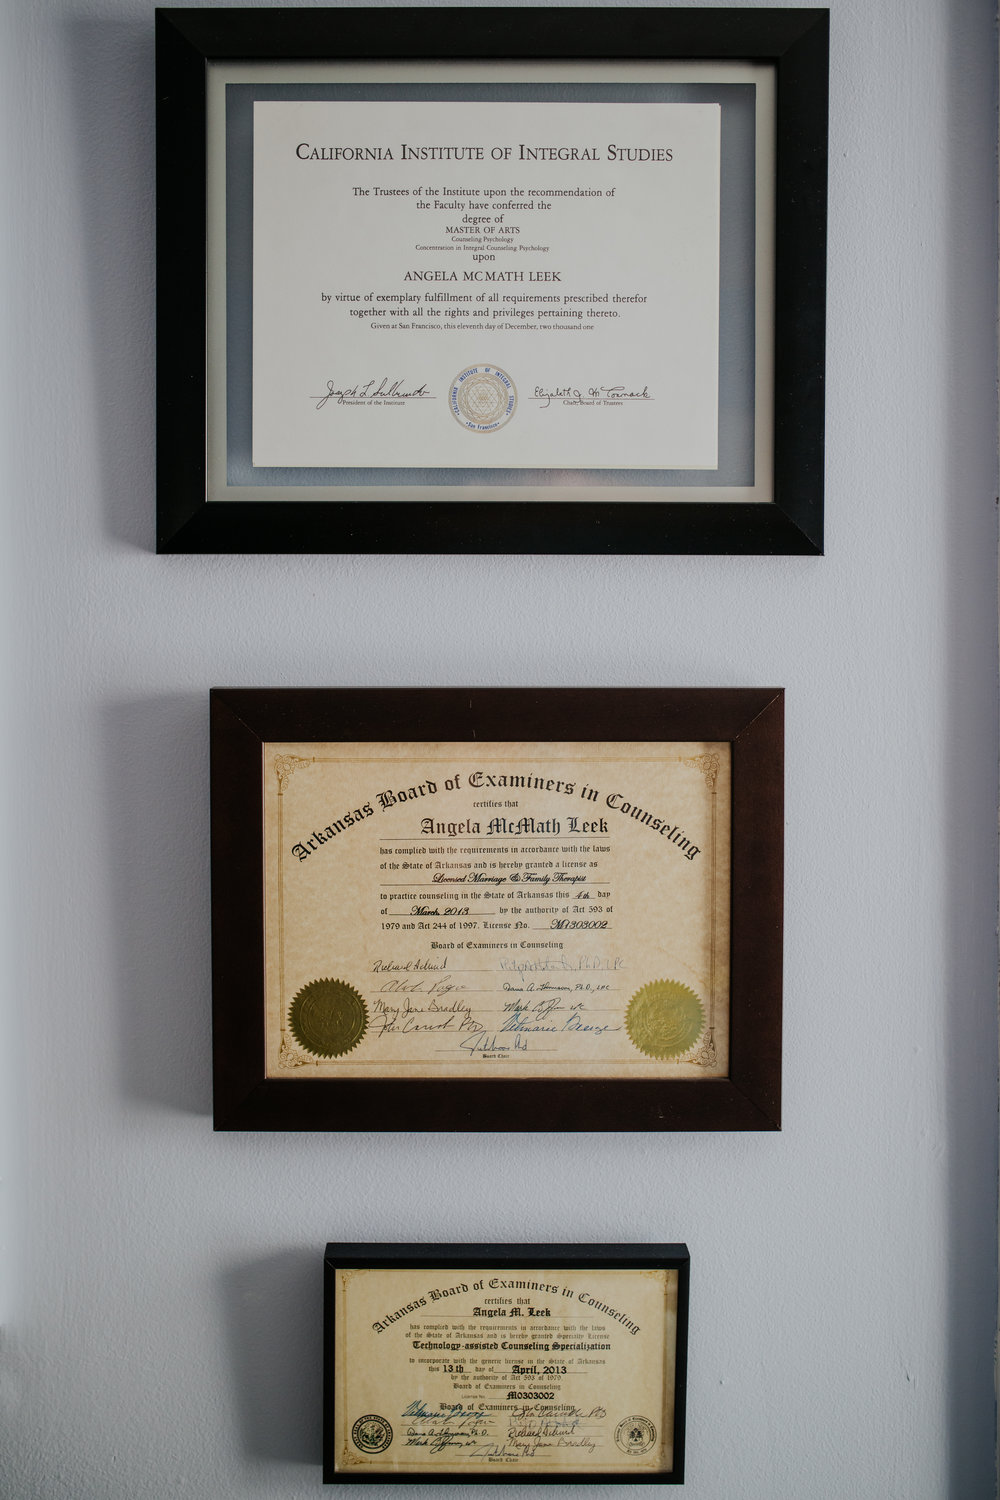 Degrees and Credentials -  BA, Human Studies, Warren Wilson College.  Asheville, NC  1996MA, Integral Counseling Psychology, California Institute of Integral Studies.  San Francisco, CA  2001Marriage and Family Therapist (CA) MFC 41455Marriage and Family Therapist (AR) m1303002Licensed Professional Counselor (AR) #P1710368Technology Assisted Specialization (AR)Marriage and Family Therapist (GA) MFT001613Marriage and Family Therapist (NY) Certified Holistic Life CoachRYT 200 (Registered Yoga Teacher) Yoga GypsyPost graduate coursework at University of Arkansas towards LPC licensure 2016-2017